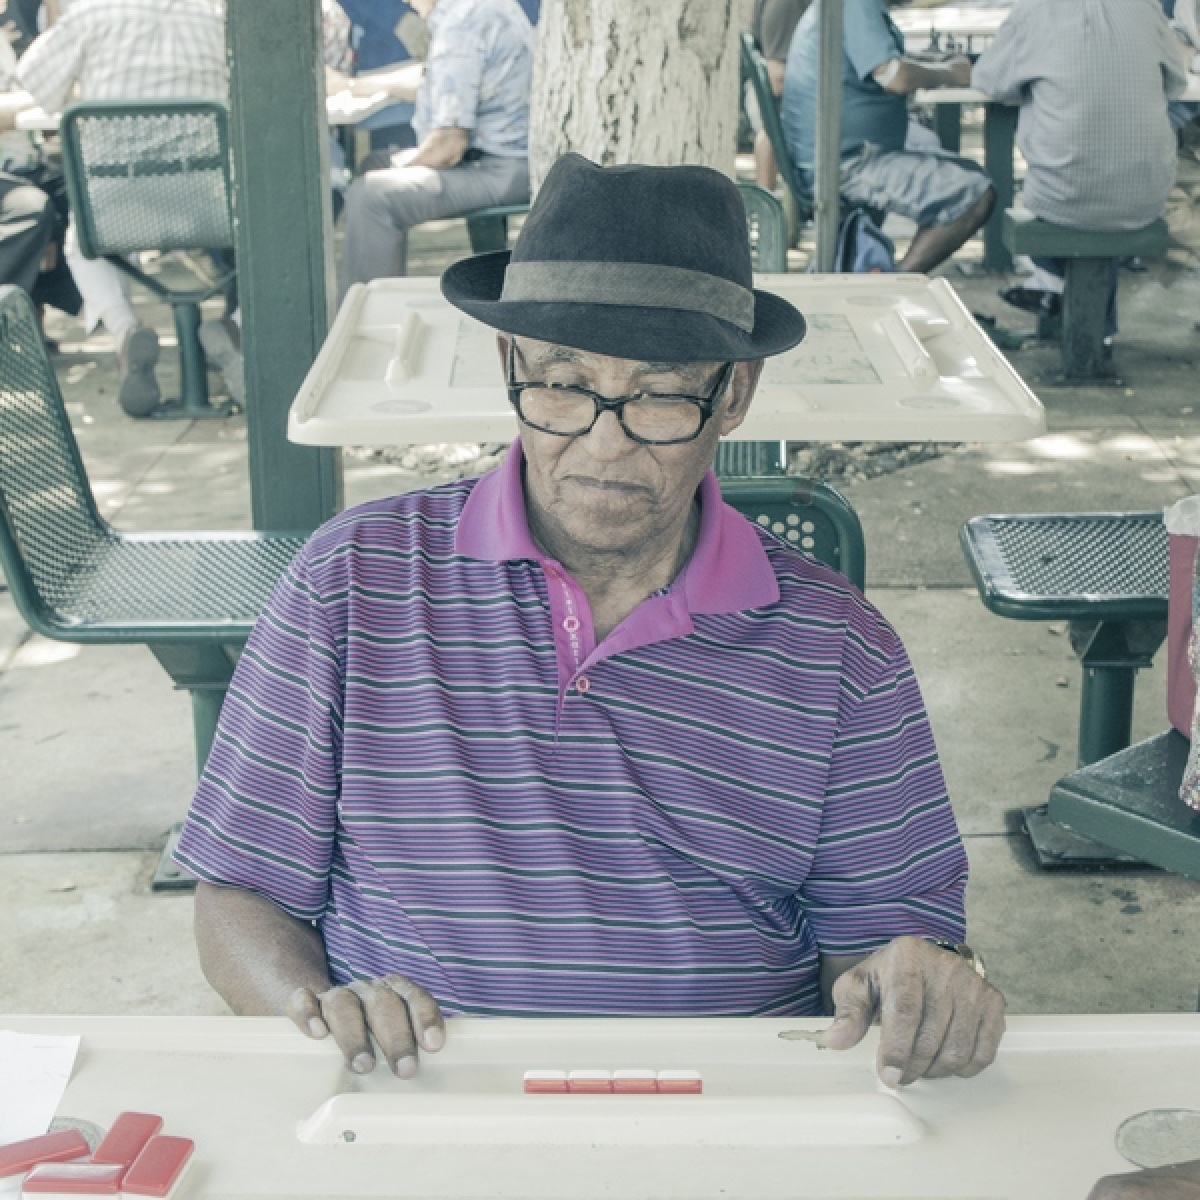 Elderly man playing board game outside